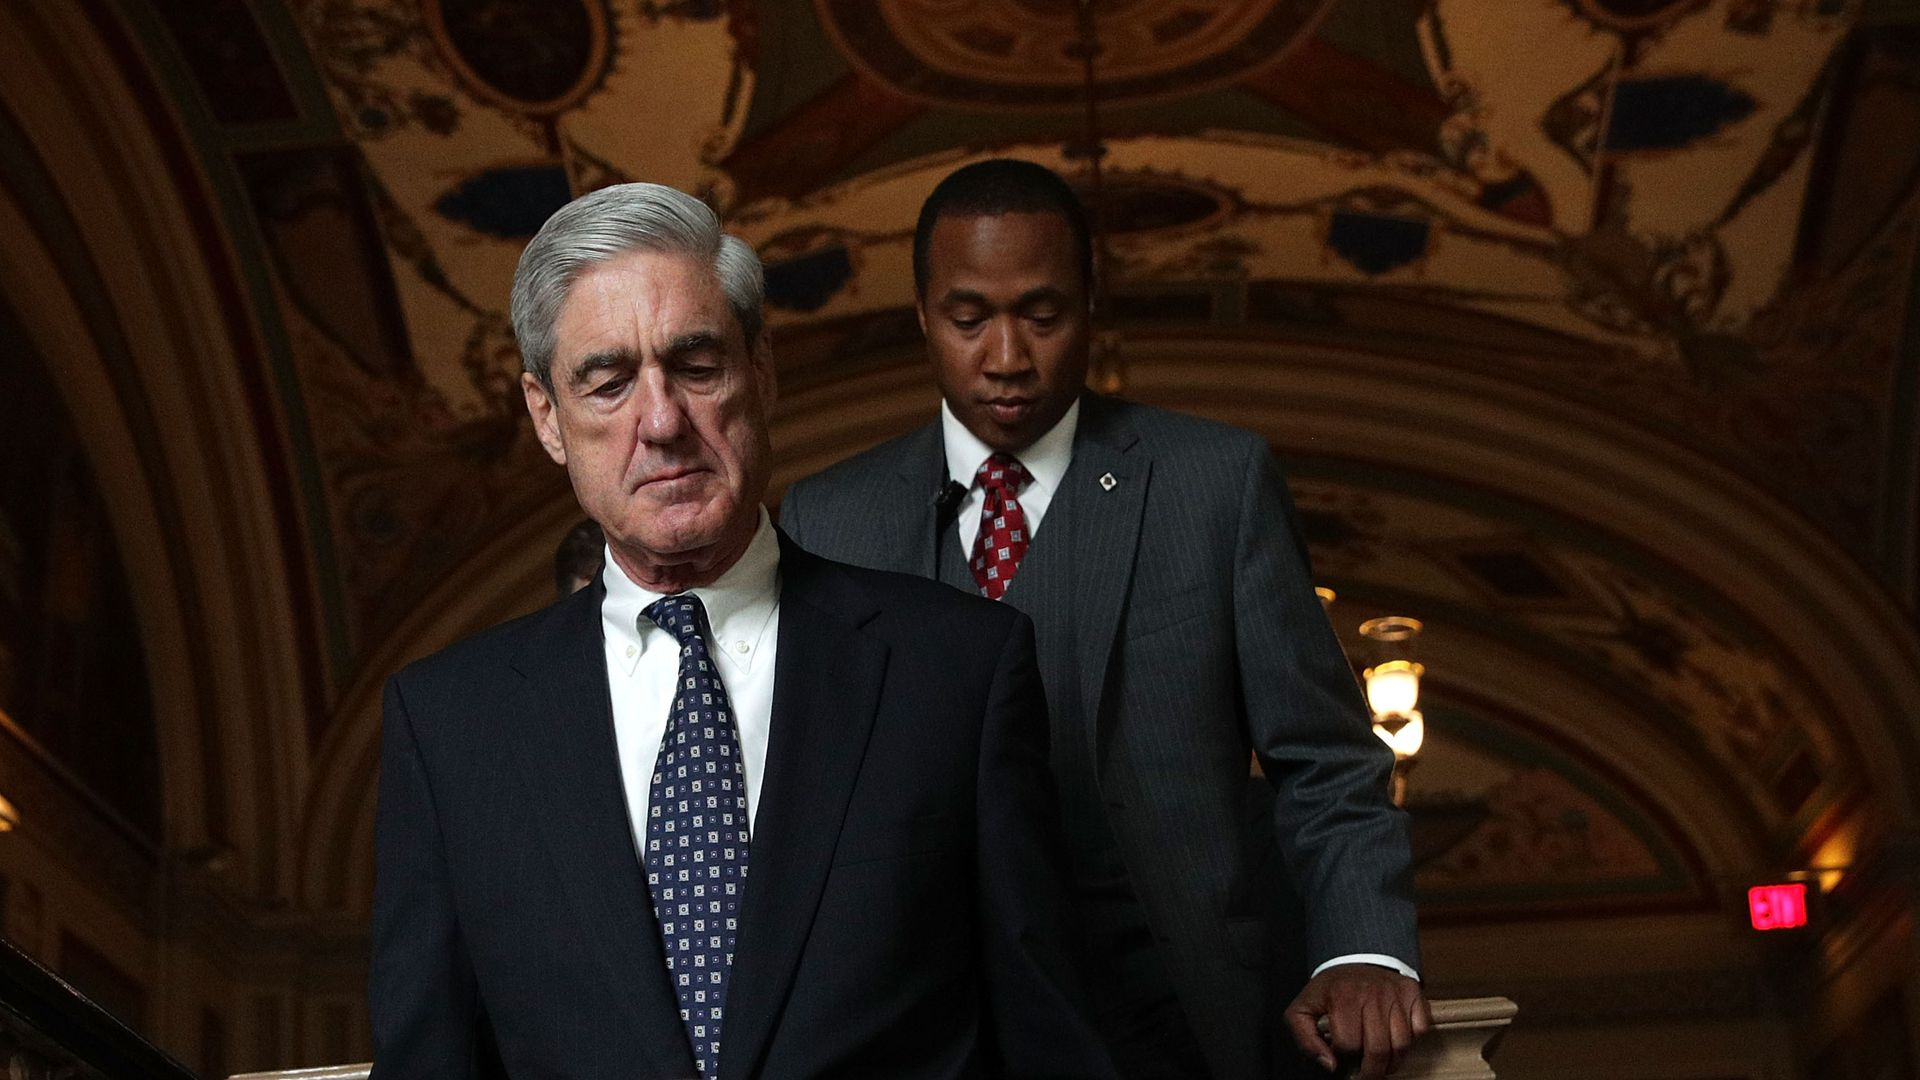 Robert Mueller walks down a flight of stairs in the Capitol